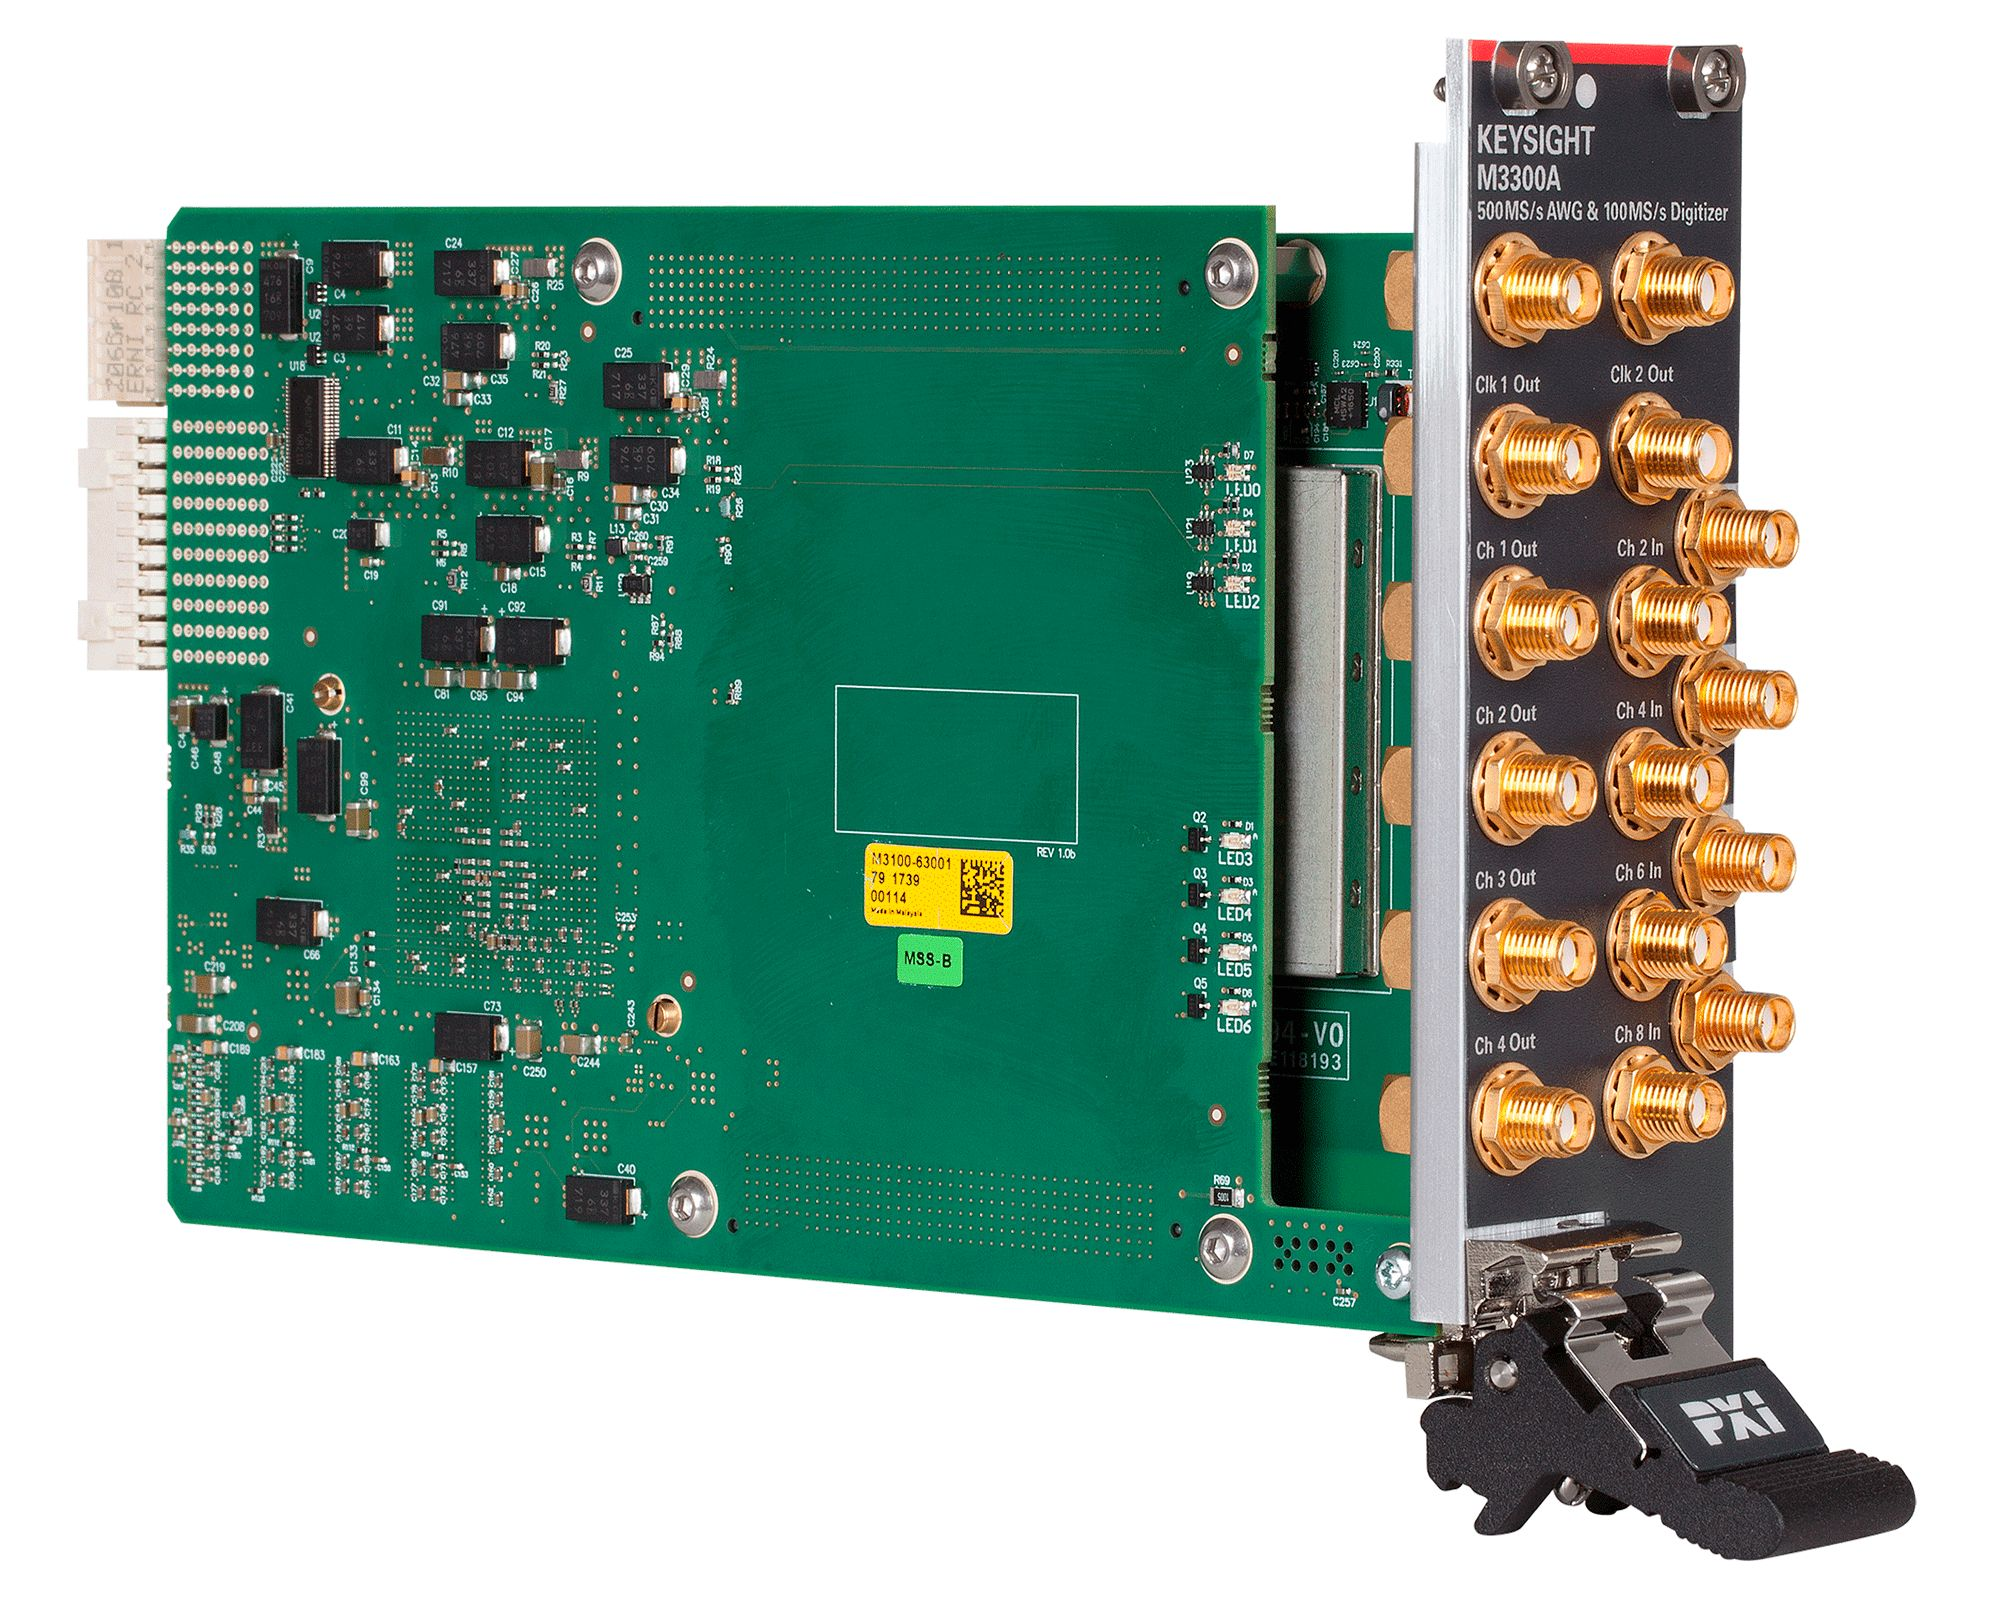 M3300A PXIe AWG and Digitizer Combination, 500 MSa/s, 16 bit and 100 MSa/s, 14 bit